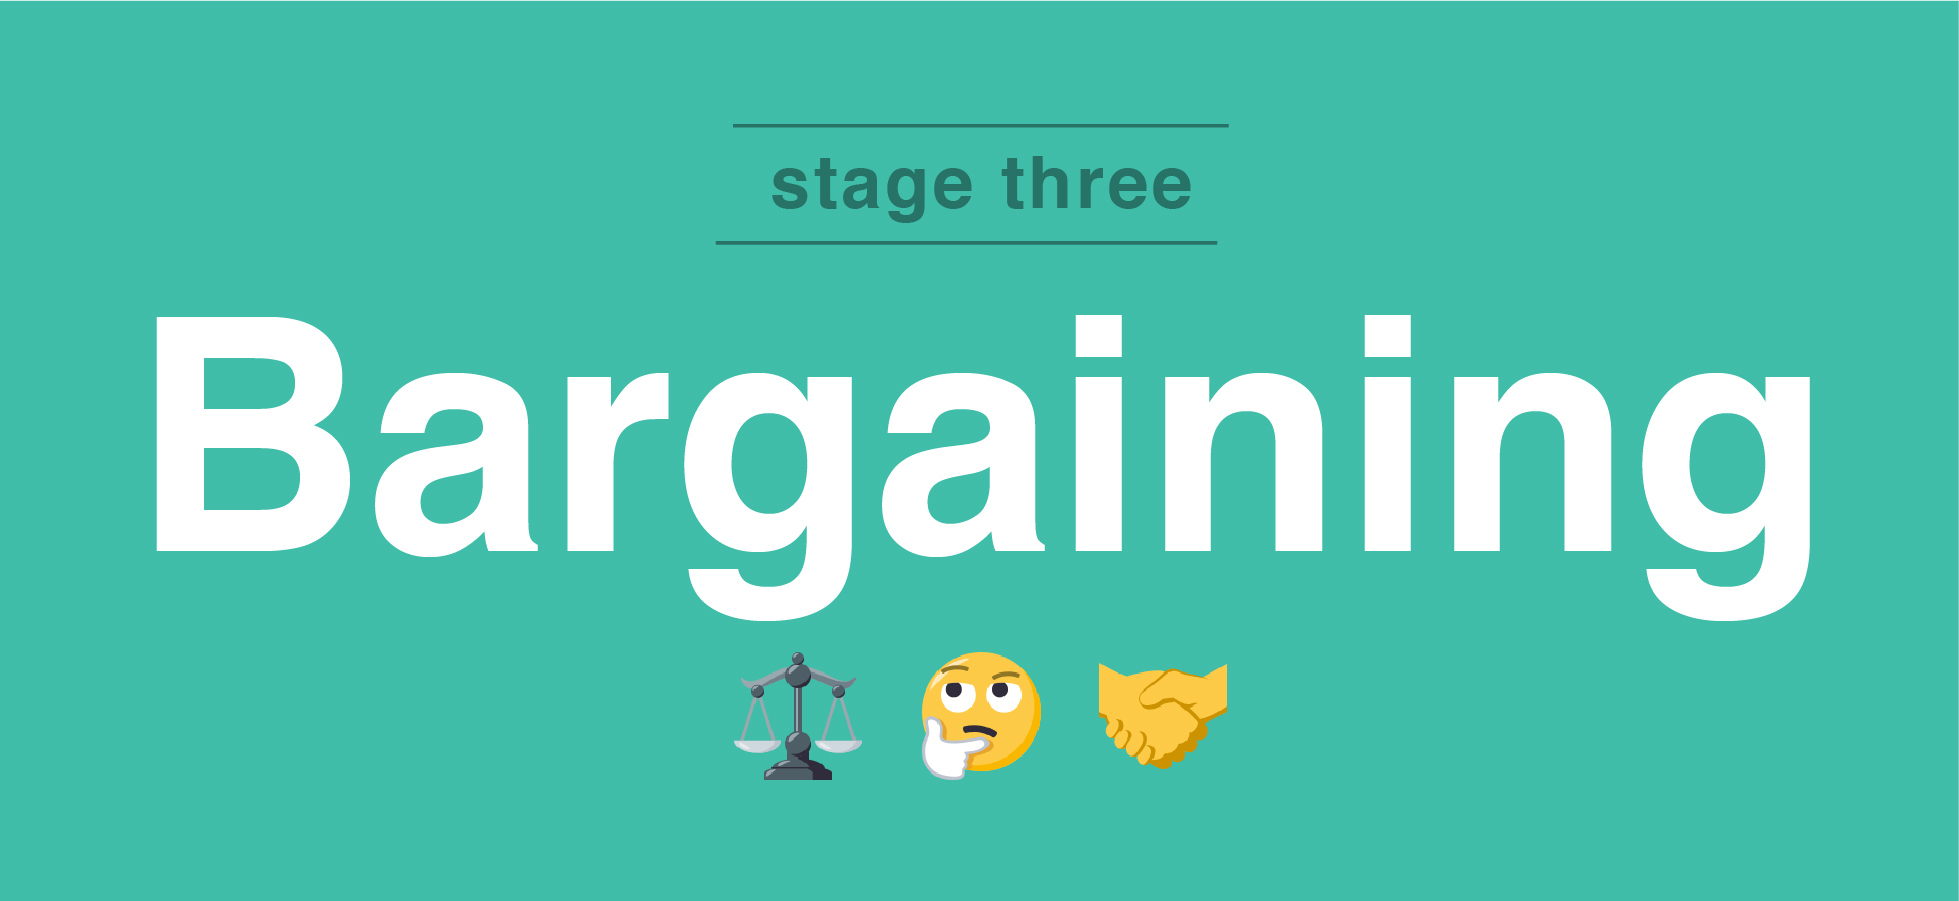 rebranding-stages-bargaining